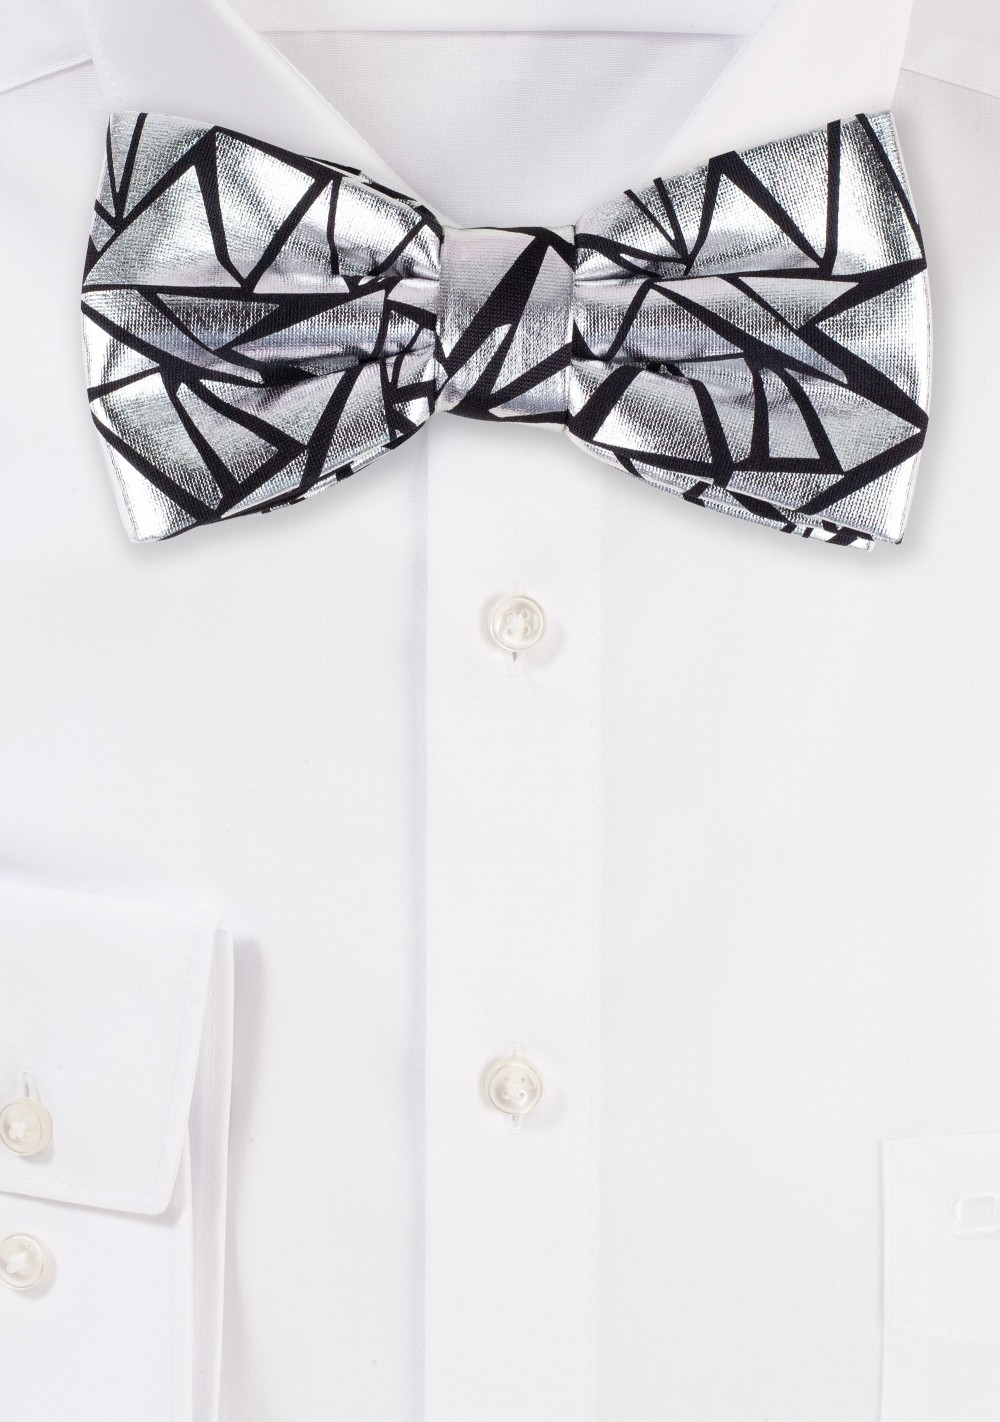 Designer Bow Tie in Black and Metallic Silver